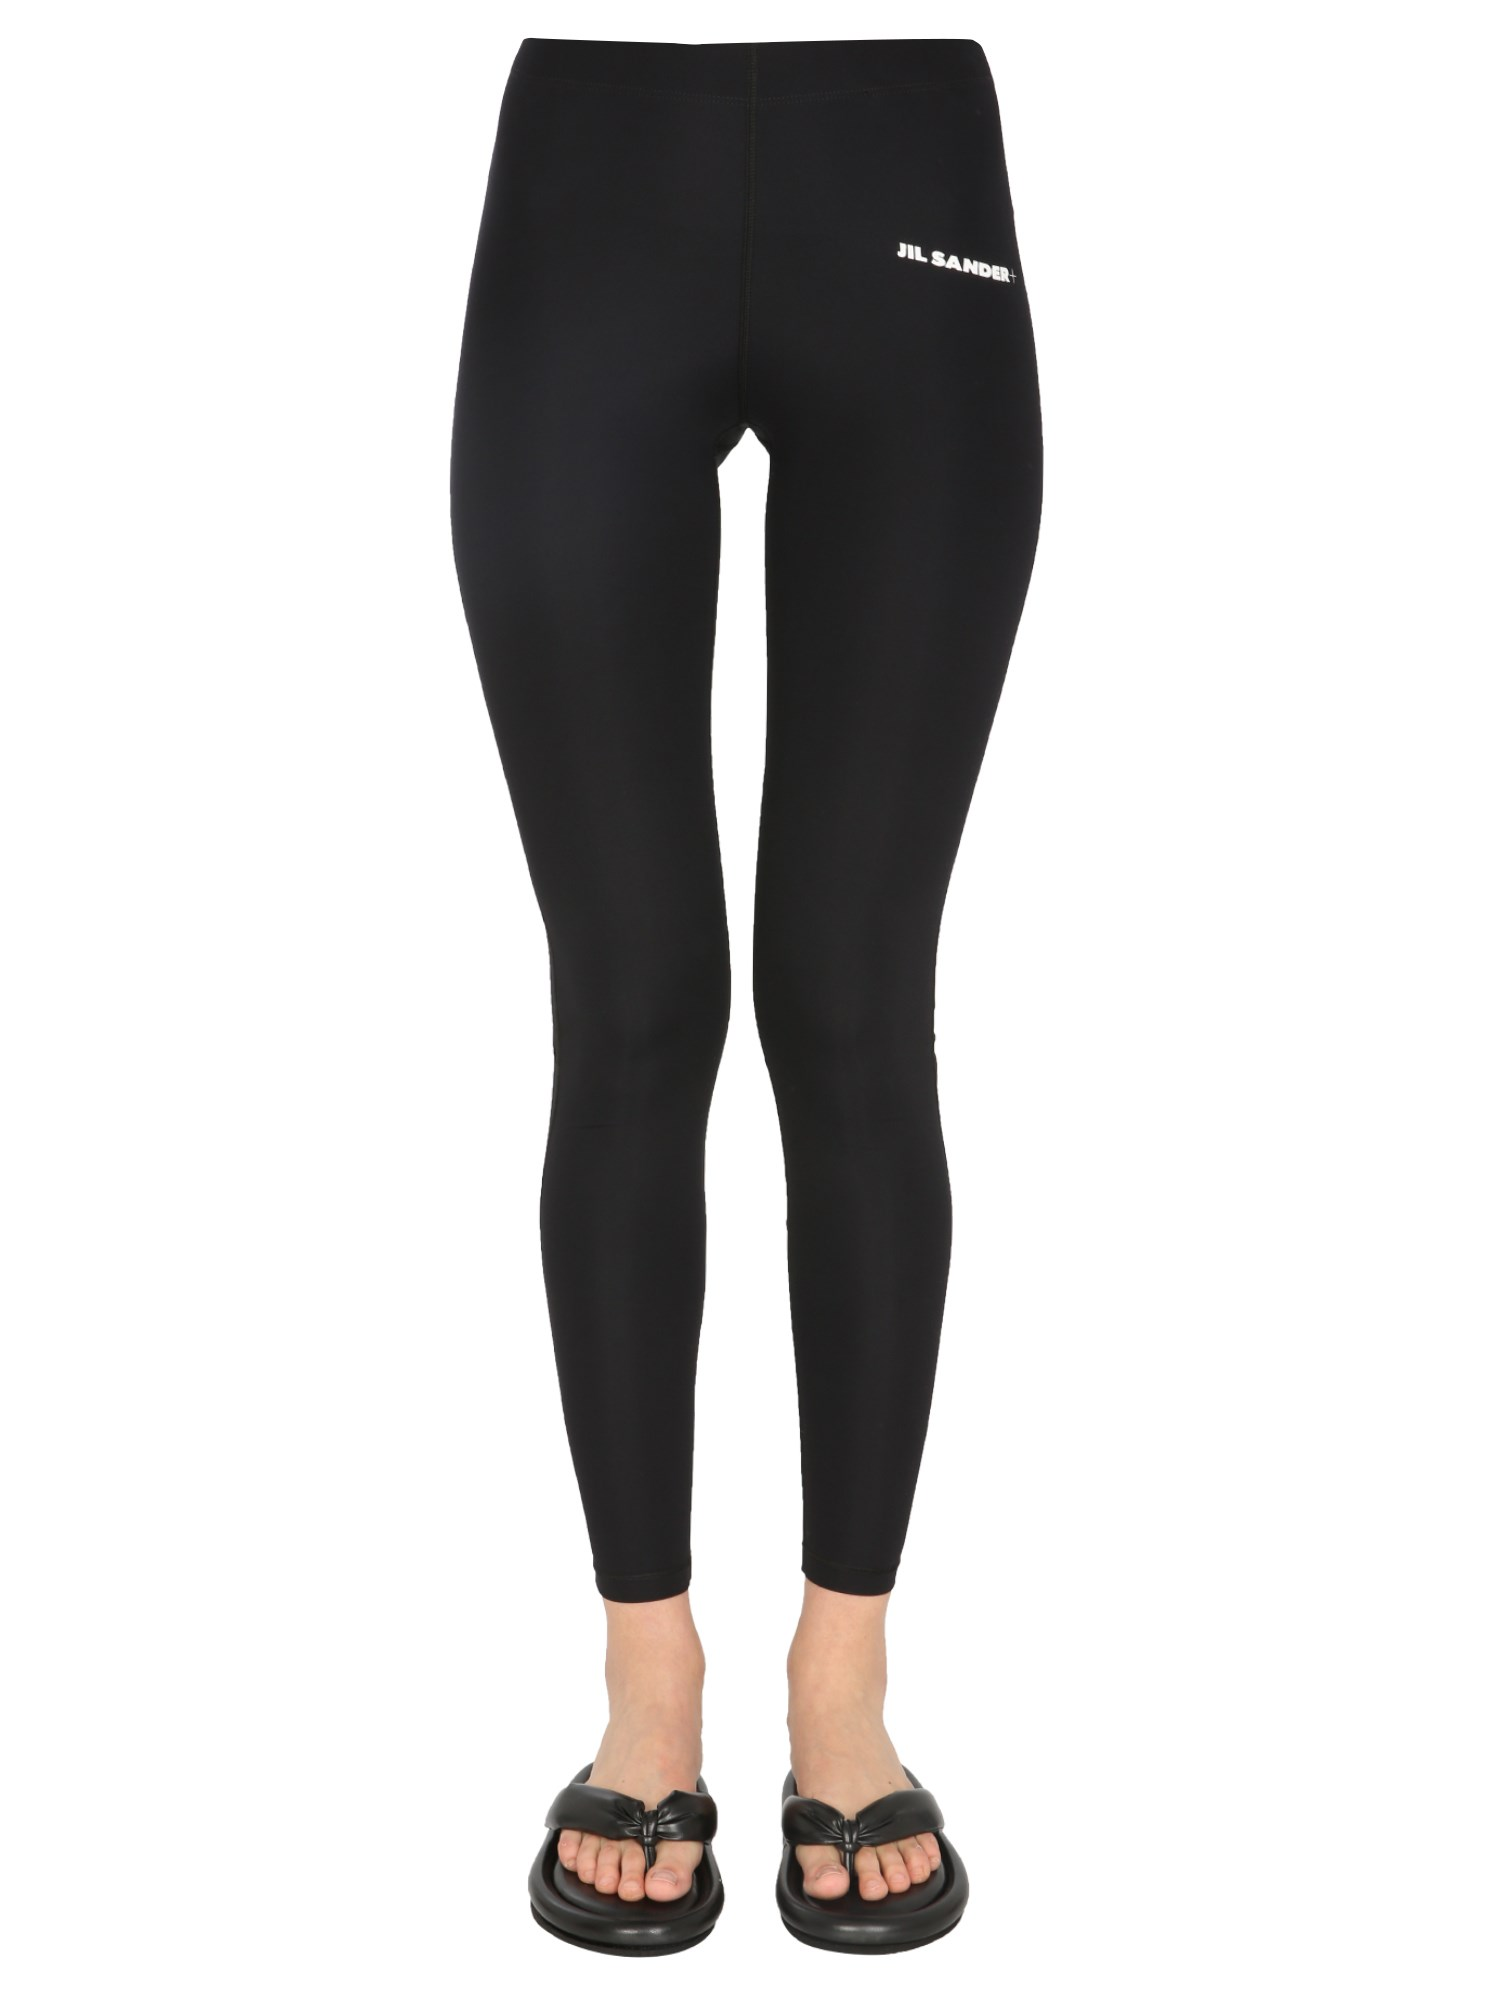 jil sander leggings with logo print